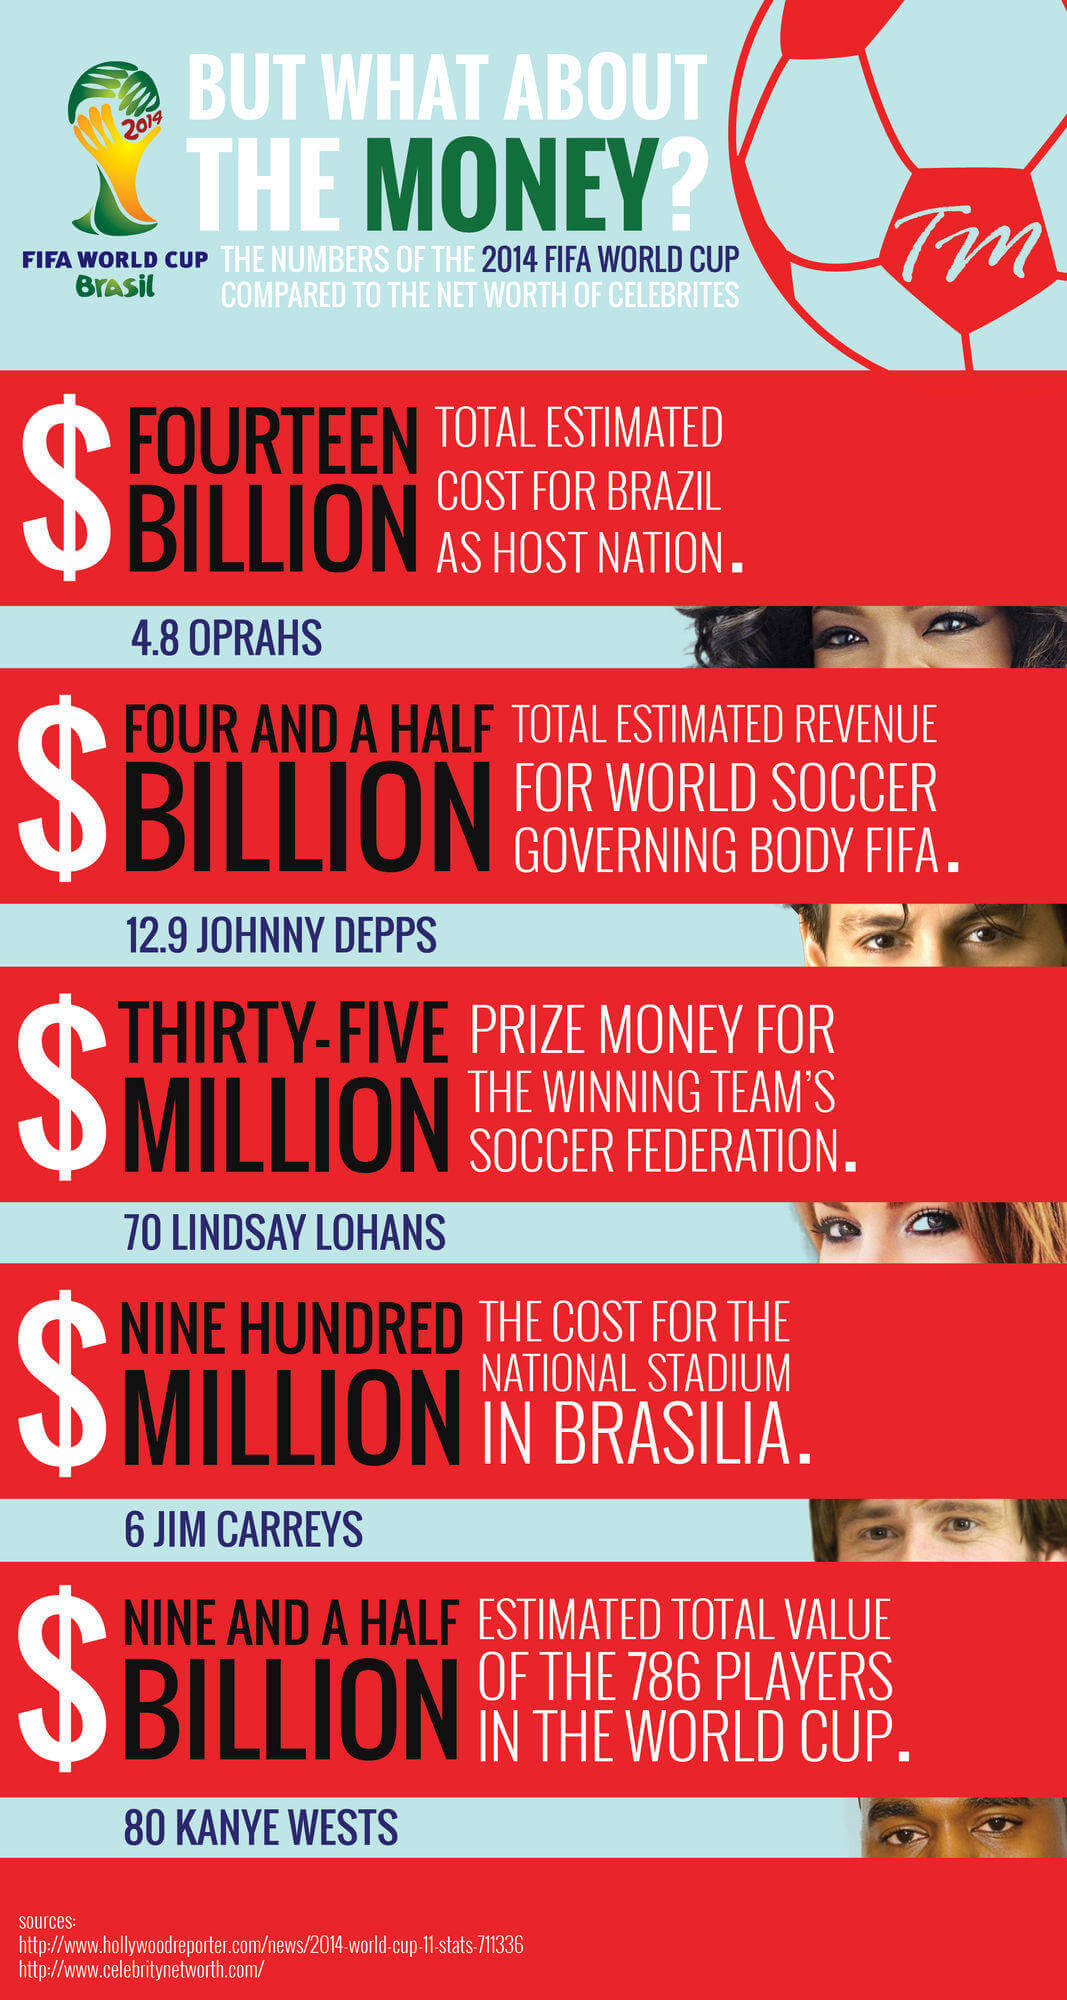 2014 FIFA World Cup Costs Compared to Celebrity Net Worth